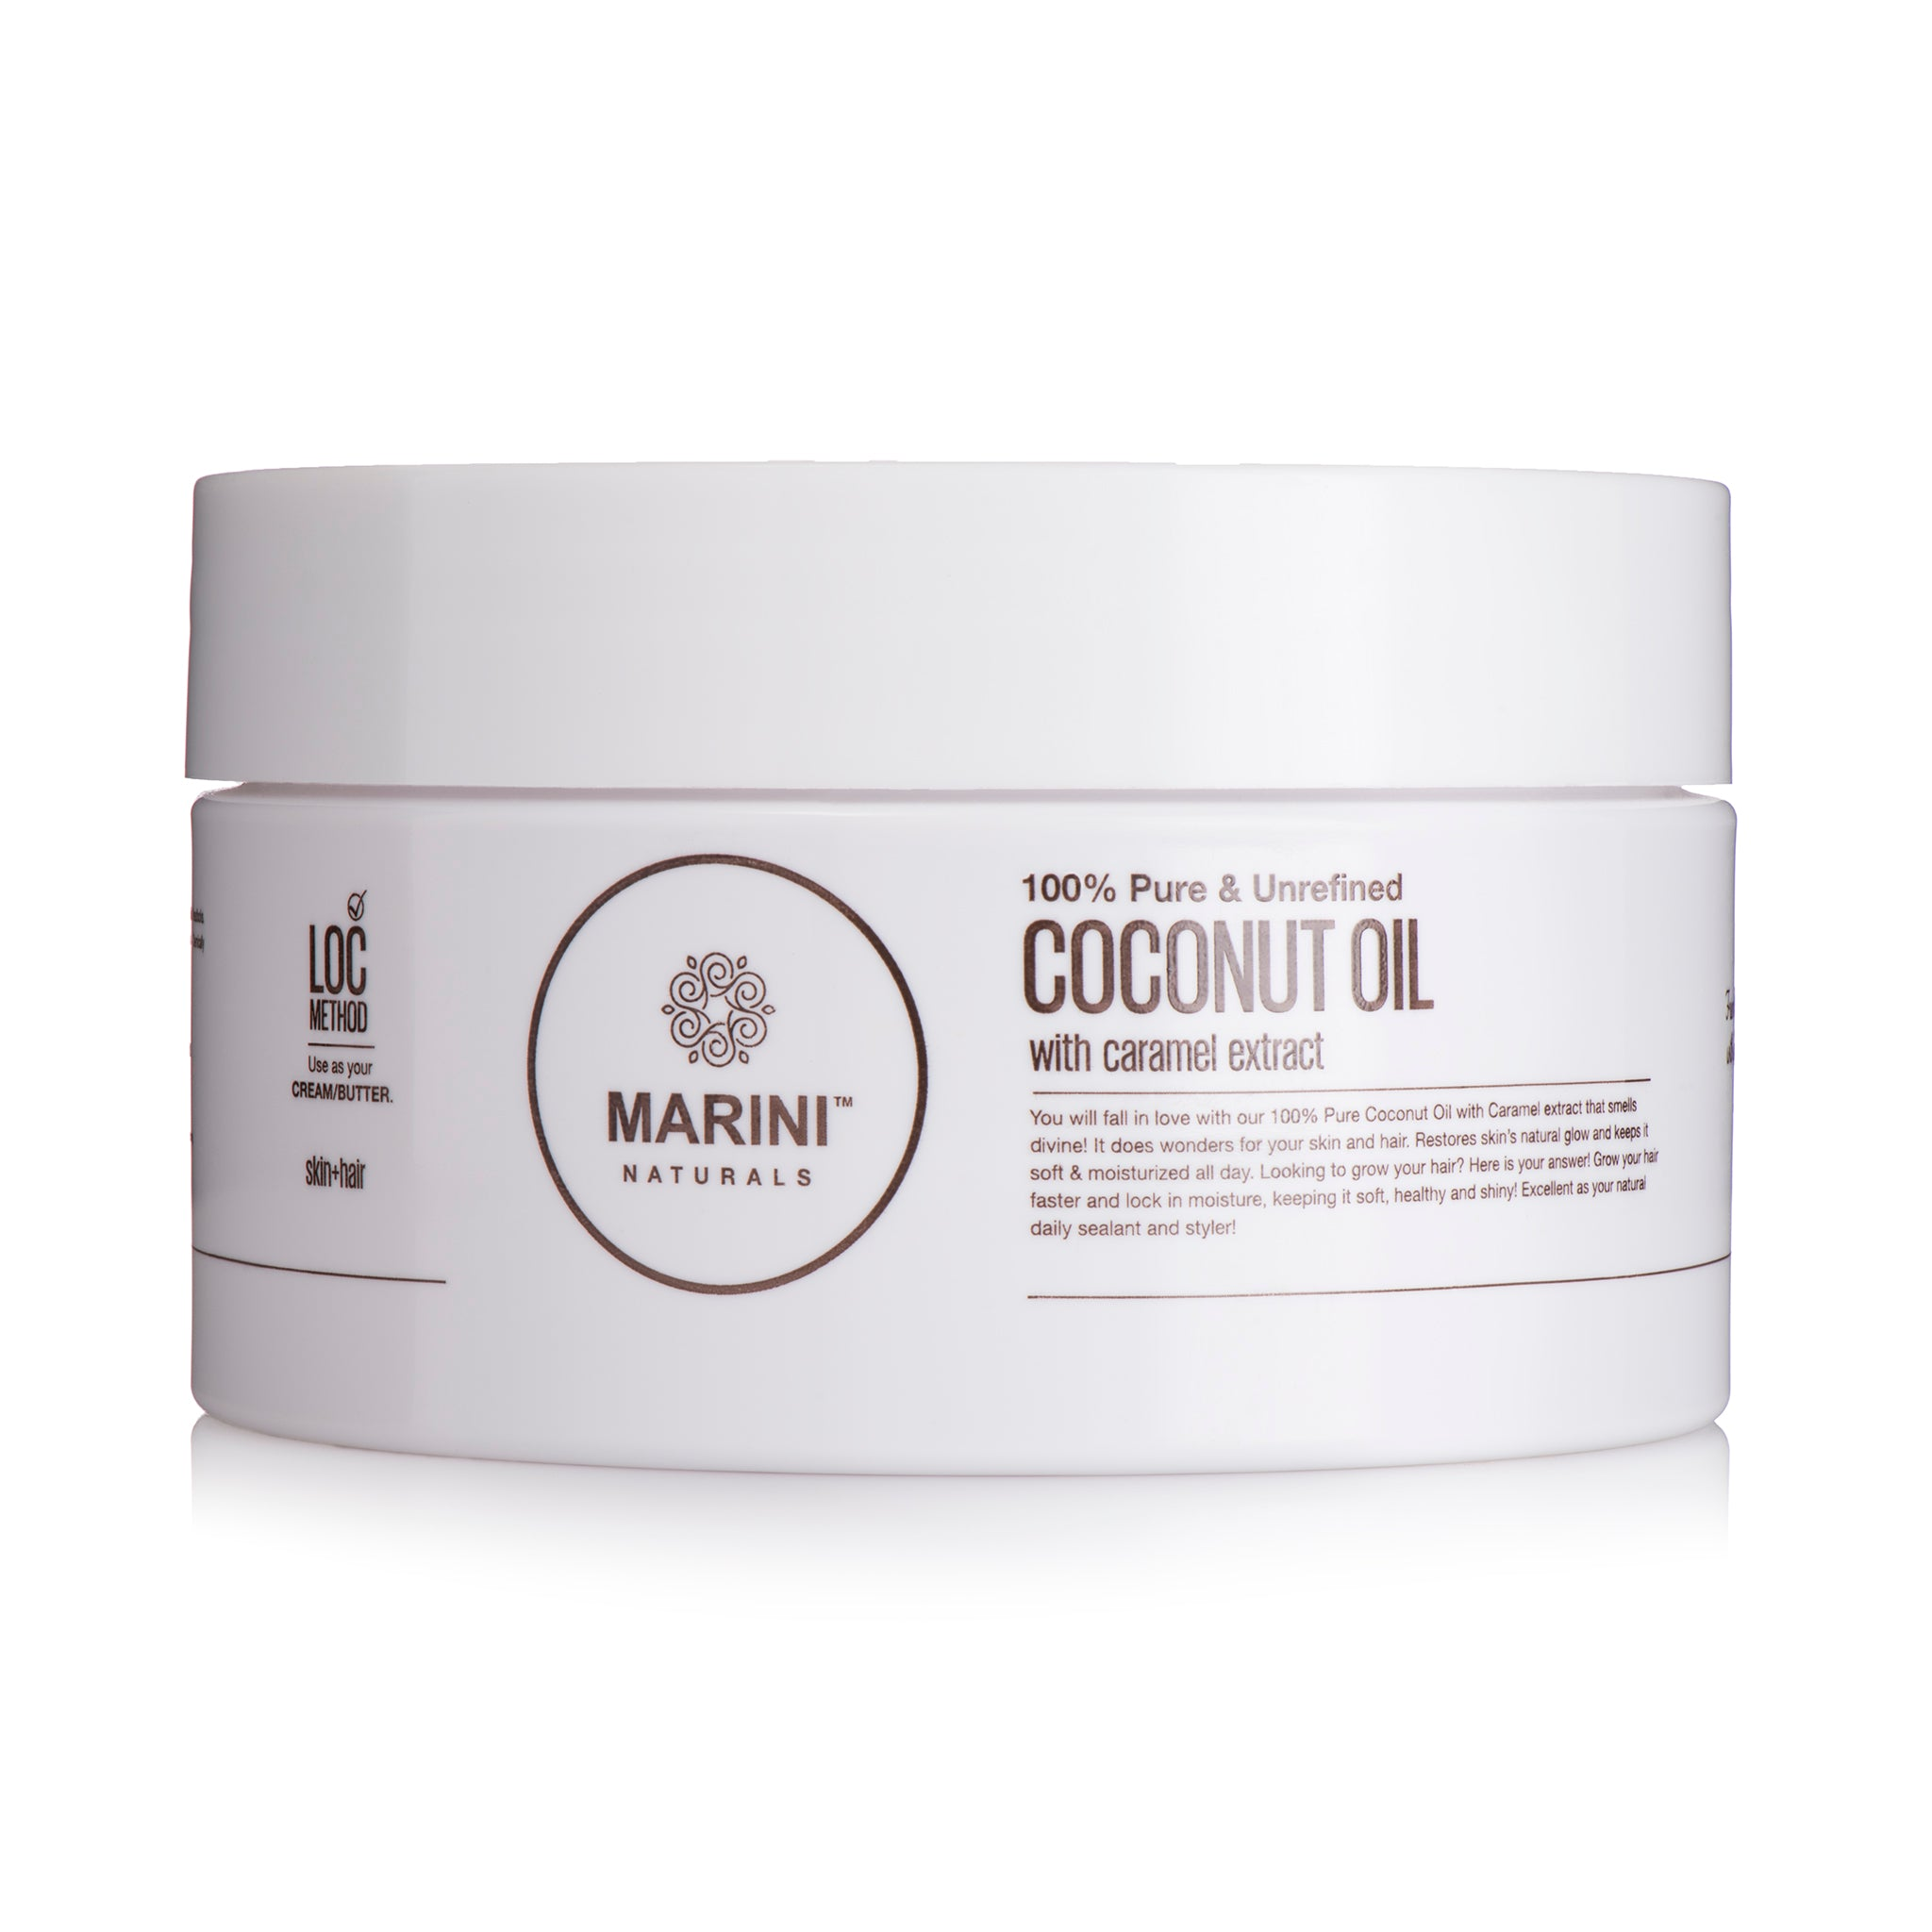 MARINI NATURALS 100% PURE COCONUT OIL WITH CARAMEL EXTRACT